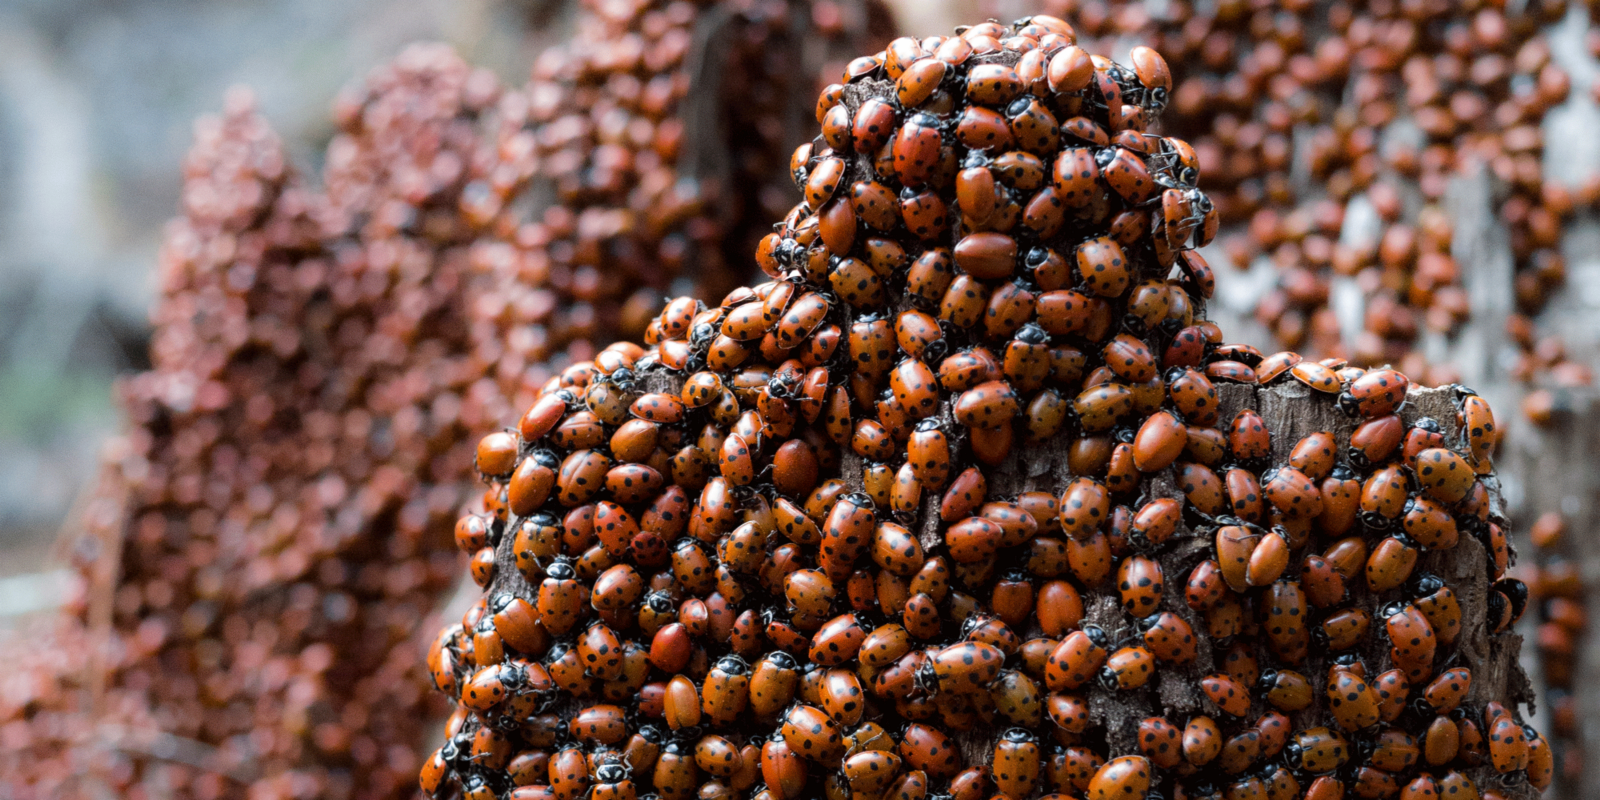 Millions Of Ladybugs Converge In Oakland Redwoods The